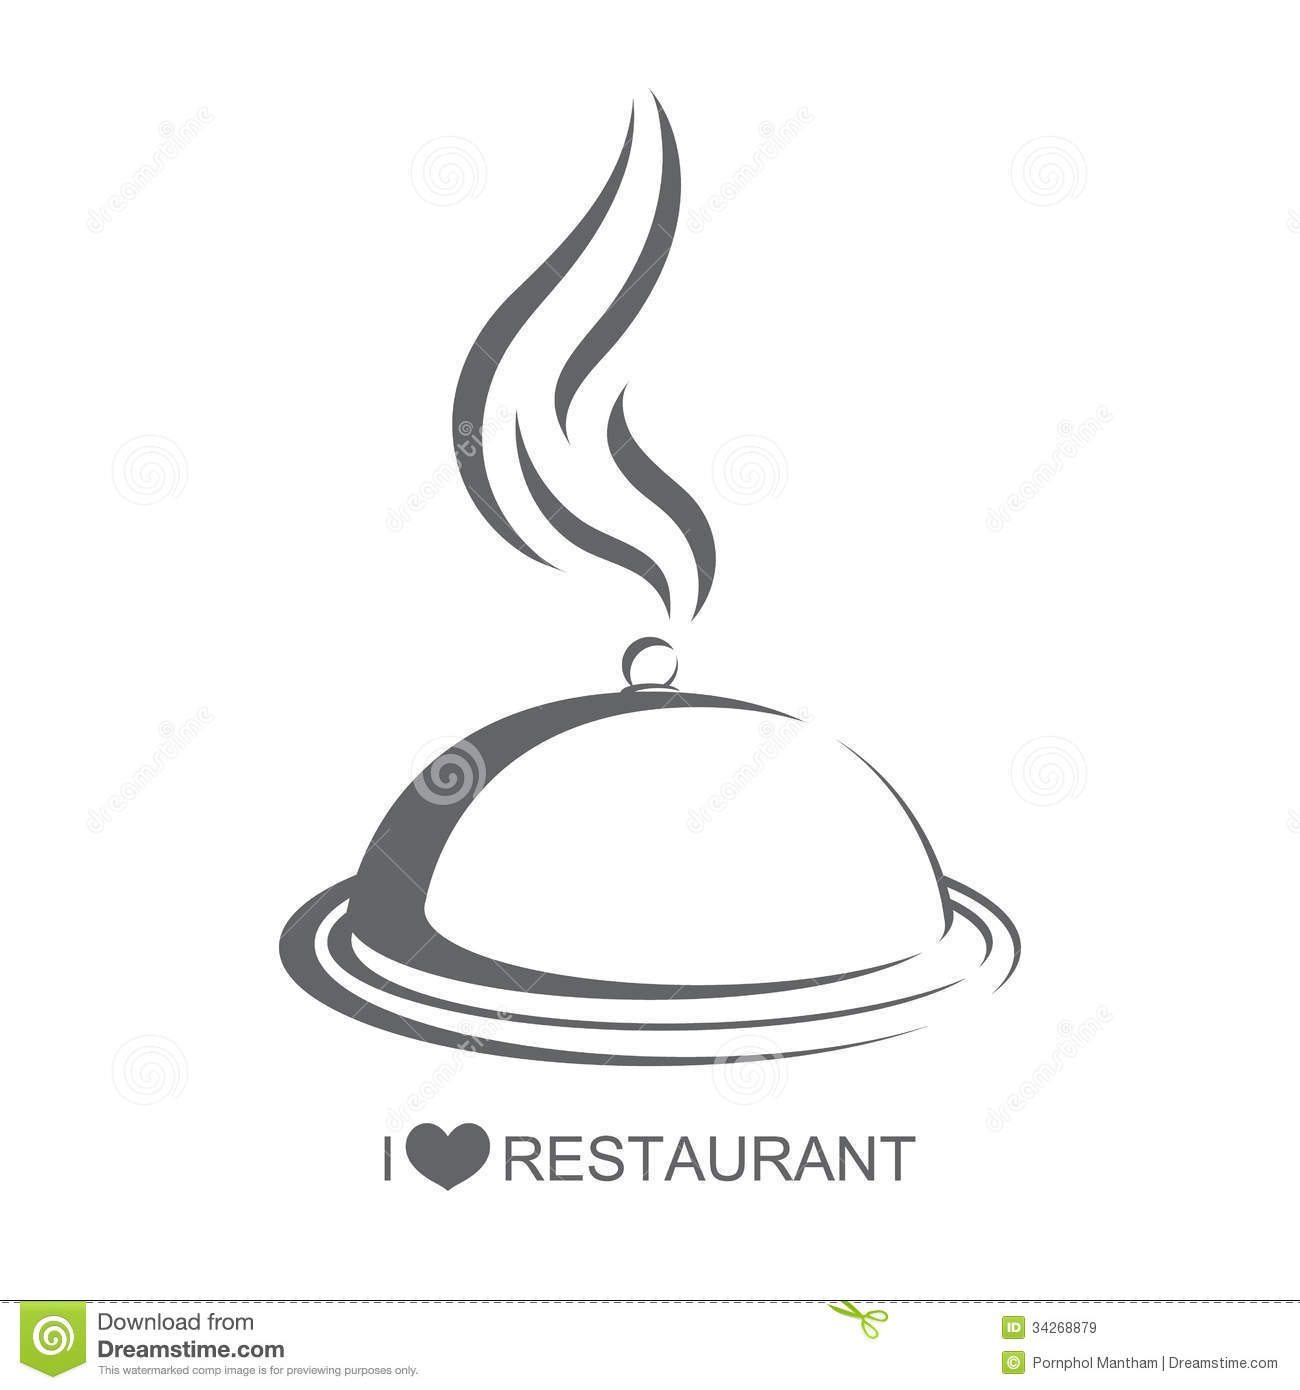 480053323 in addition Smoke Cigarette And Ashtray Silhoue 7156552 in addition Oven Accessories together with 62808 maid also Royalty Free Stock Images Restaurant Food Platter Cover Isolated White Background Image34268879. on tray clipart